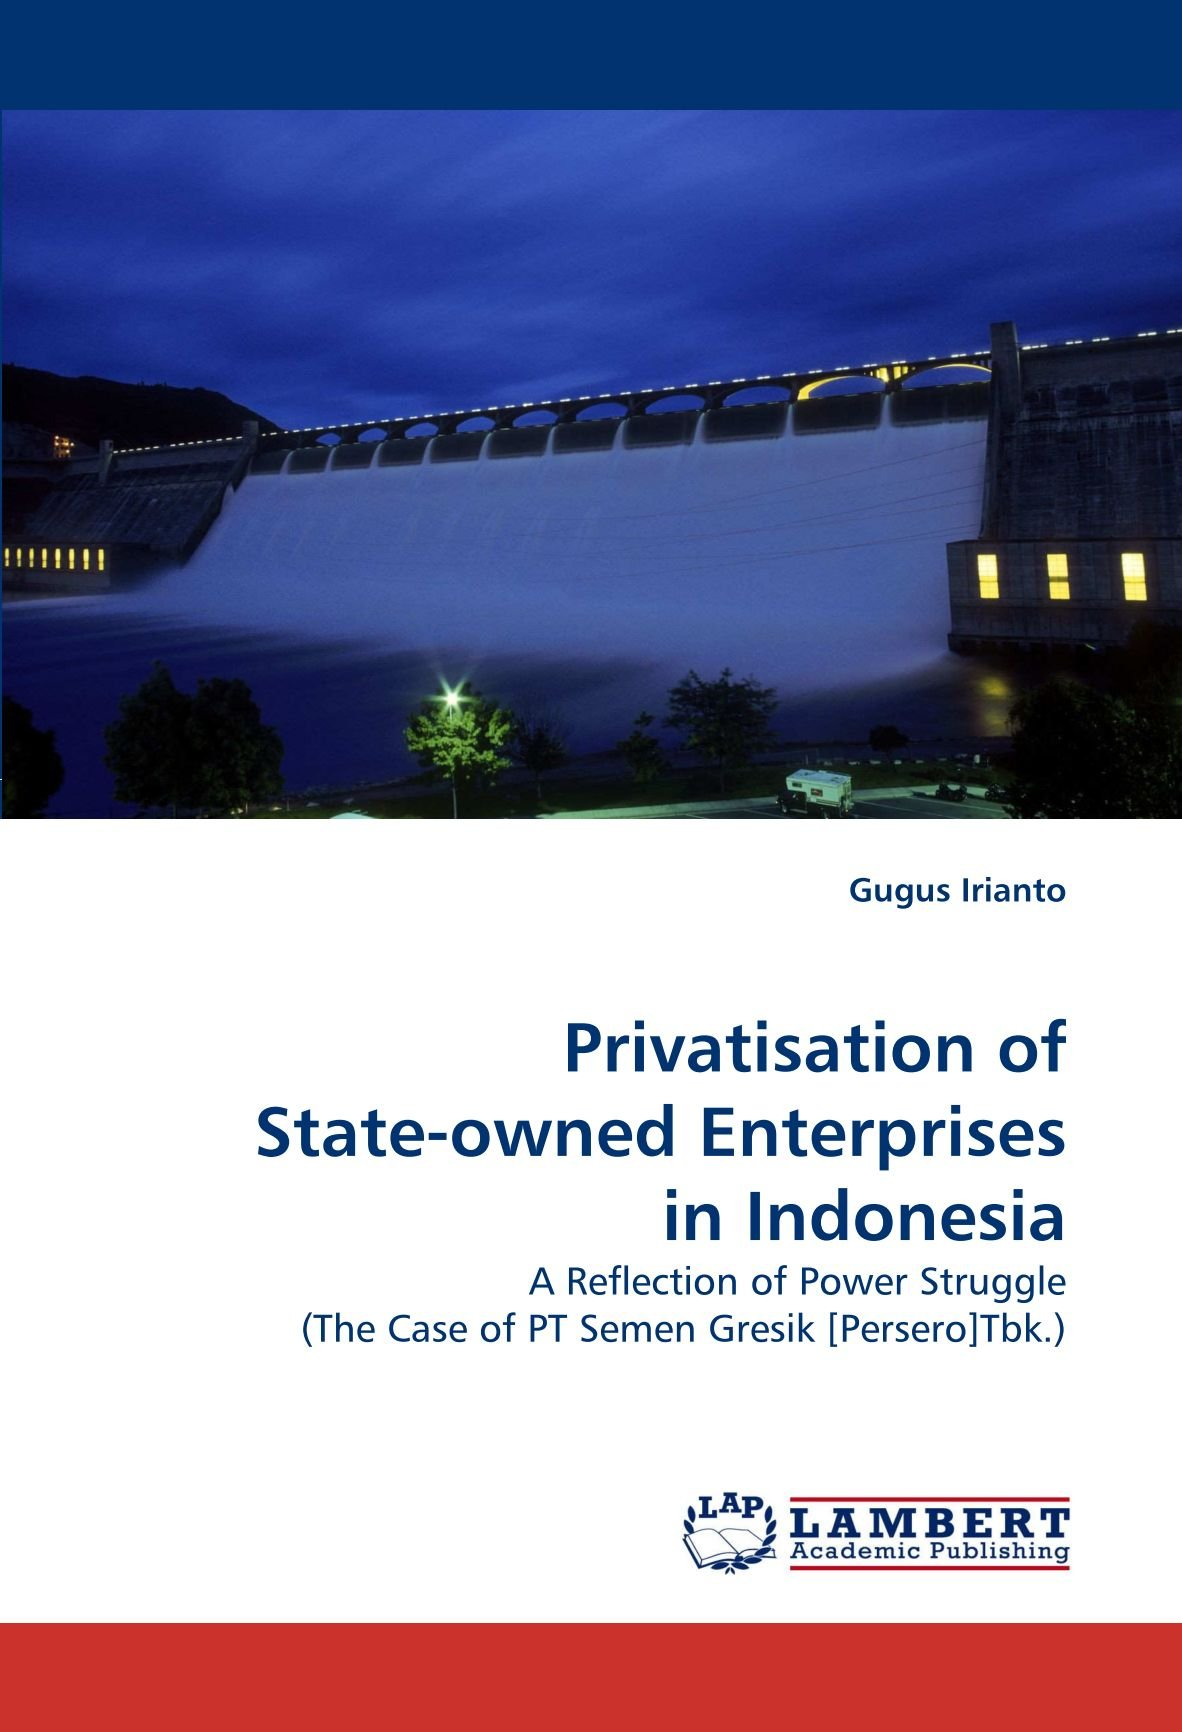 Download Privatisation of State-owned Enterprises in Indonesia: A Reflection of Power Struggle (The Case of PT Semen Gresik [Persero]Tbk.) pdf epub